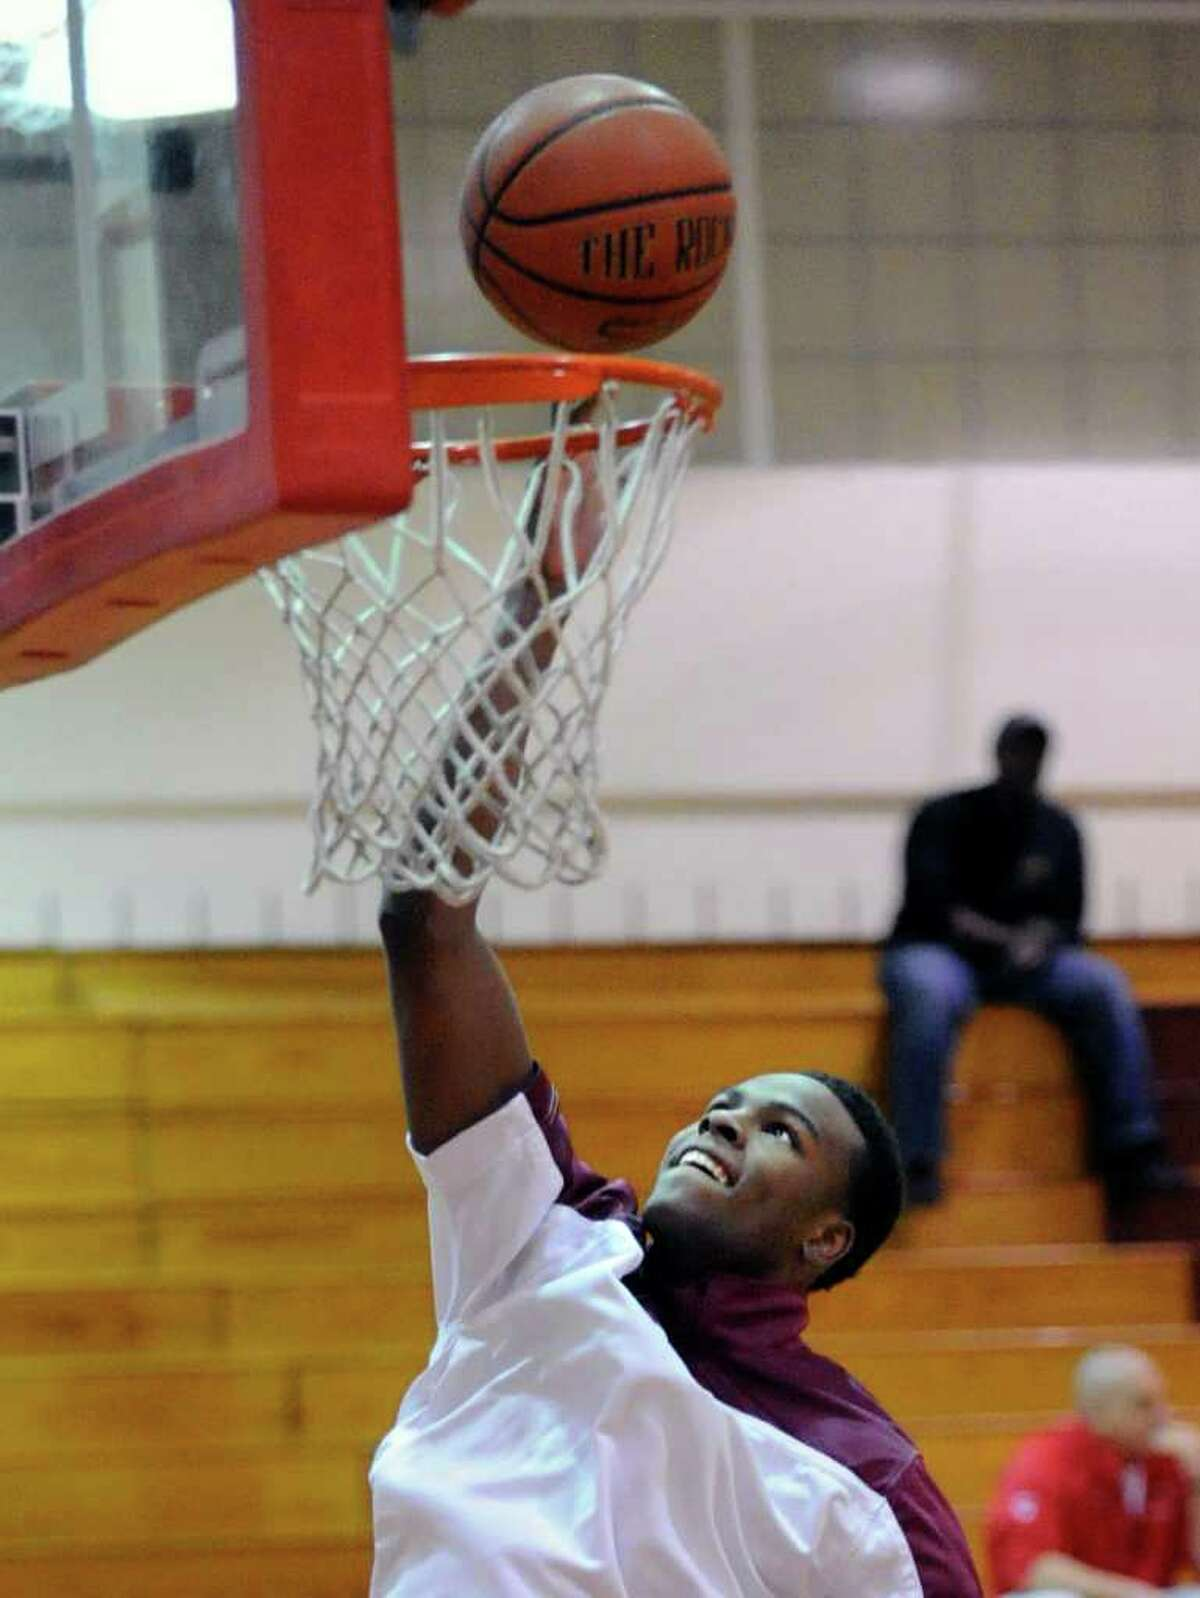 Timajh Parker of St. Joe's warms up at the start of the boys high school basketball game between Greenwich High School and St. Joe's of Trumbull at Greenwich, Wednesday, Feb. 15, 2012.